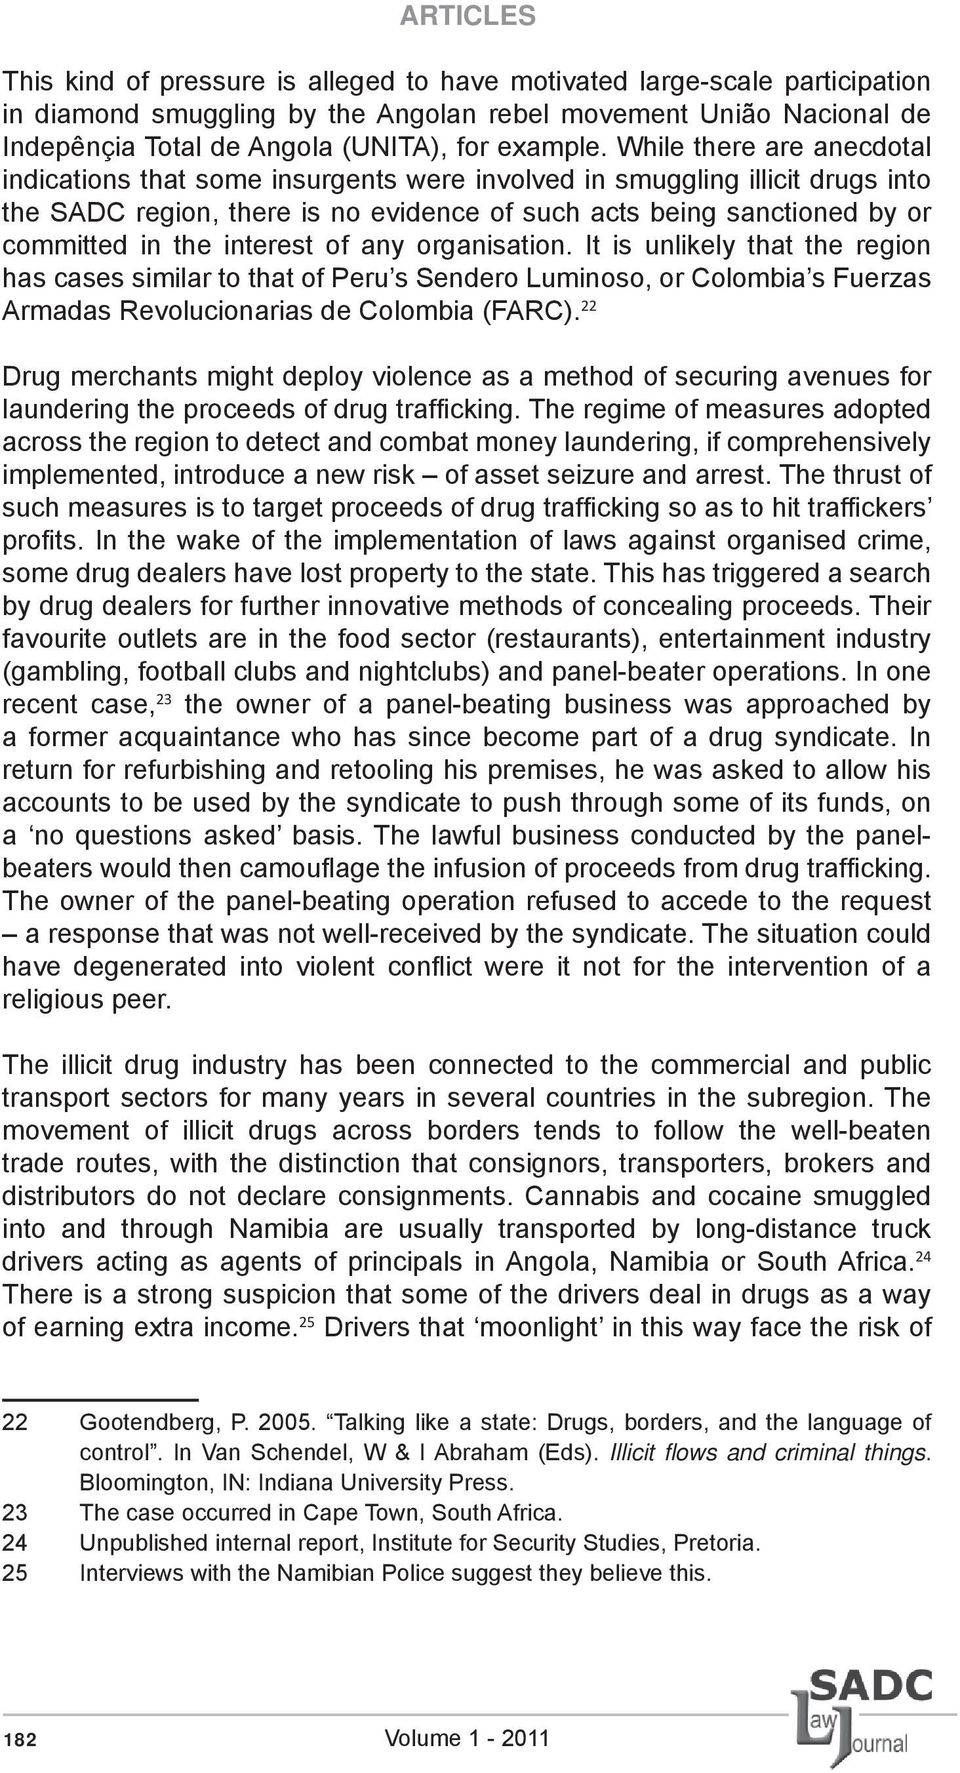 While there are anecdotal indications that some insurgents were involved in smuggling illicit drugs into the SADC region, there is no evidence of such acts being sanctioned by or committed in the